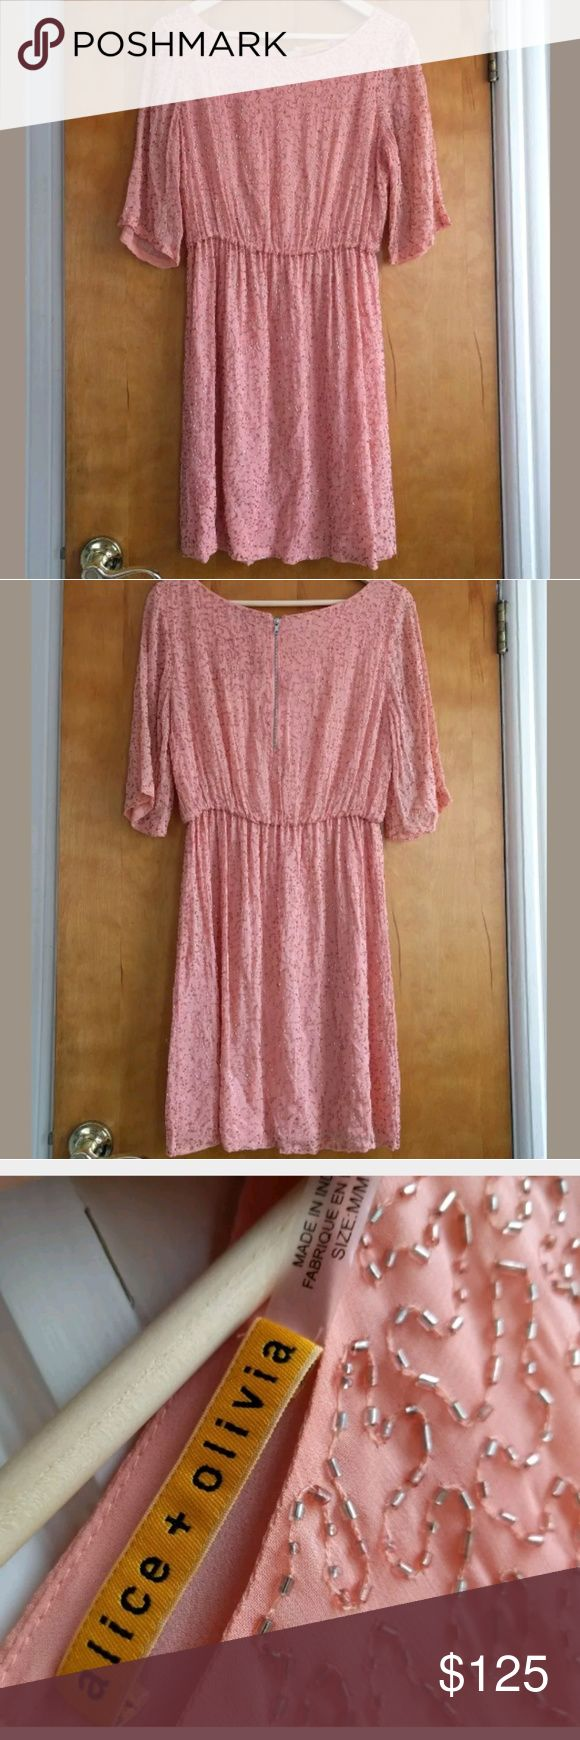 Alice + Olivia pink beaded dress M Gorgeous Alice+Olivia dress, size M  Pink with silver bugle bead design. Elastic waist, back zip. Perfect for wedding guest, cocktail, party. Lightly worn, lots of life left. Alice + Olivia Dresses Mini